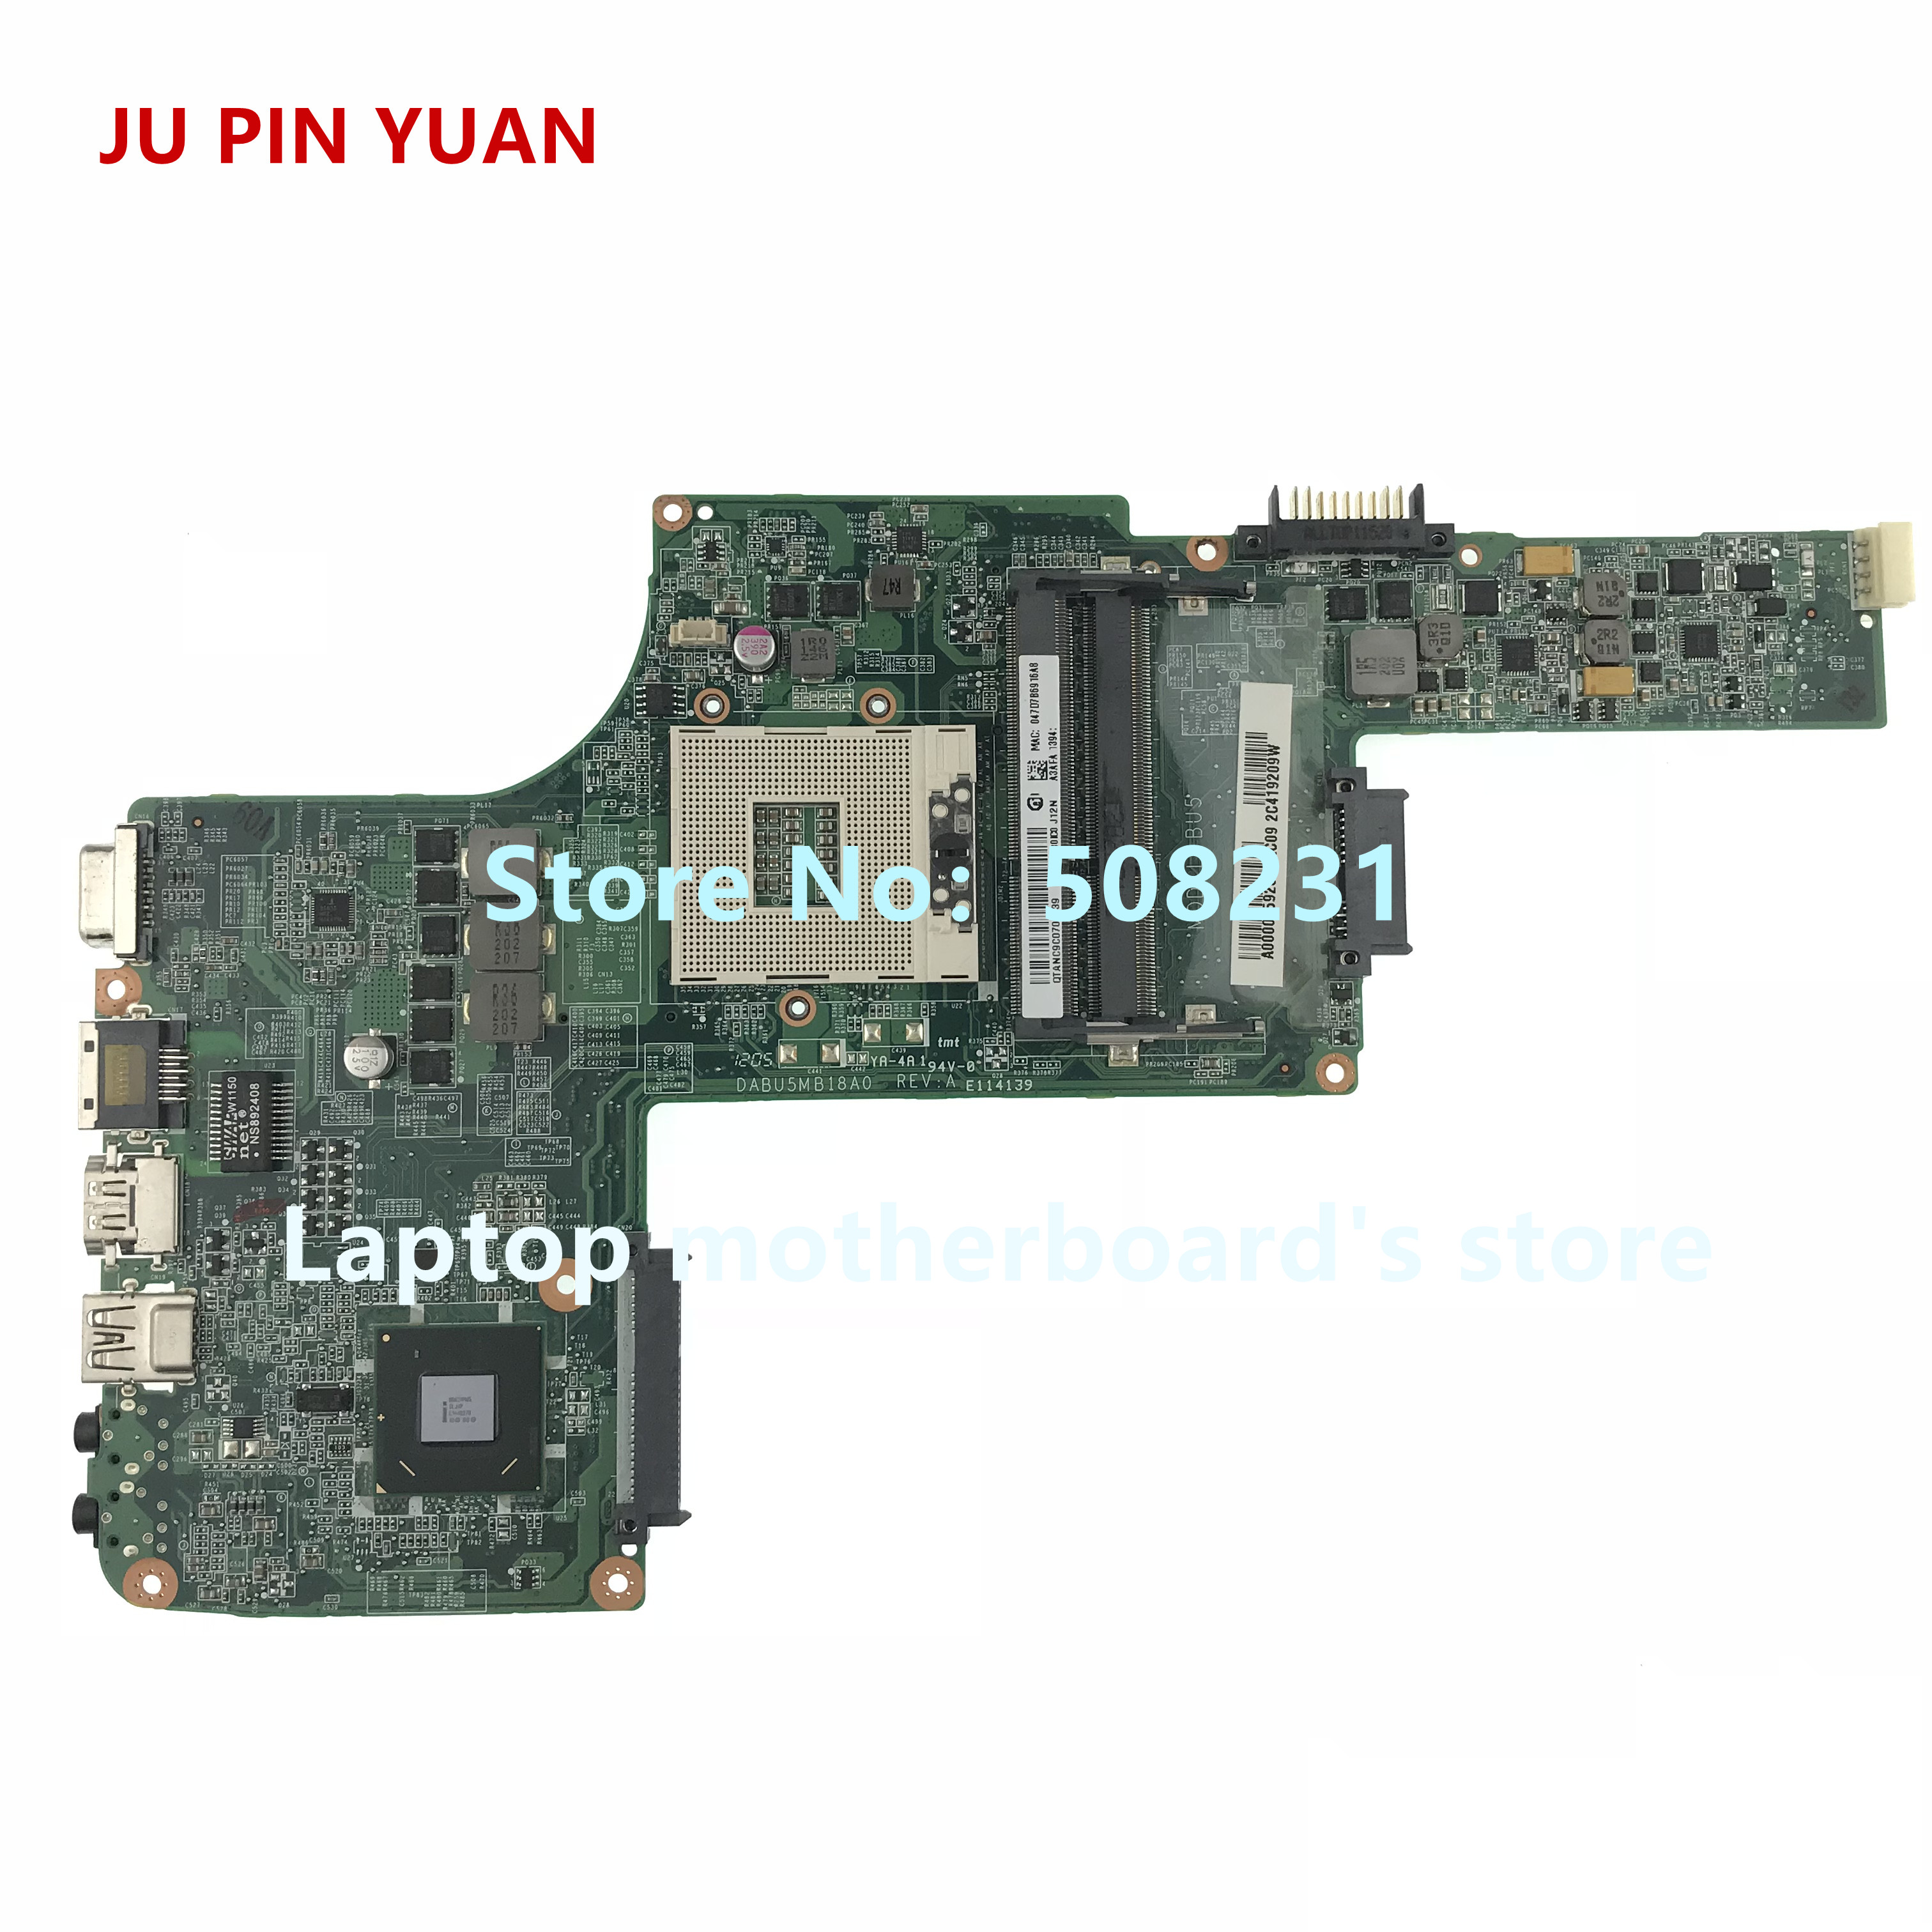 JU PIN YUAN A000095920 DA0BU5MB8E0 mainboard for Toshiba satellite L730 L735 Laptop motherboard HM65,All functions fully Tested-in Laptop Motherboard from Computer & Office    1